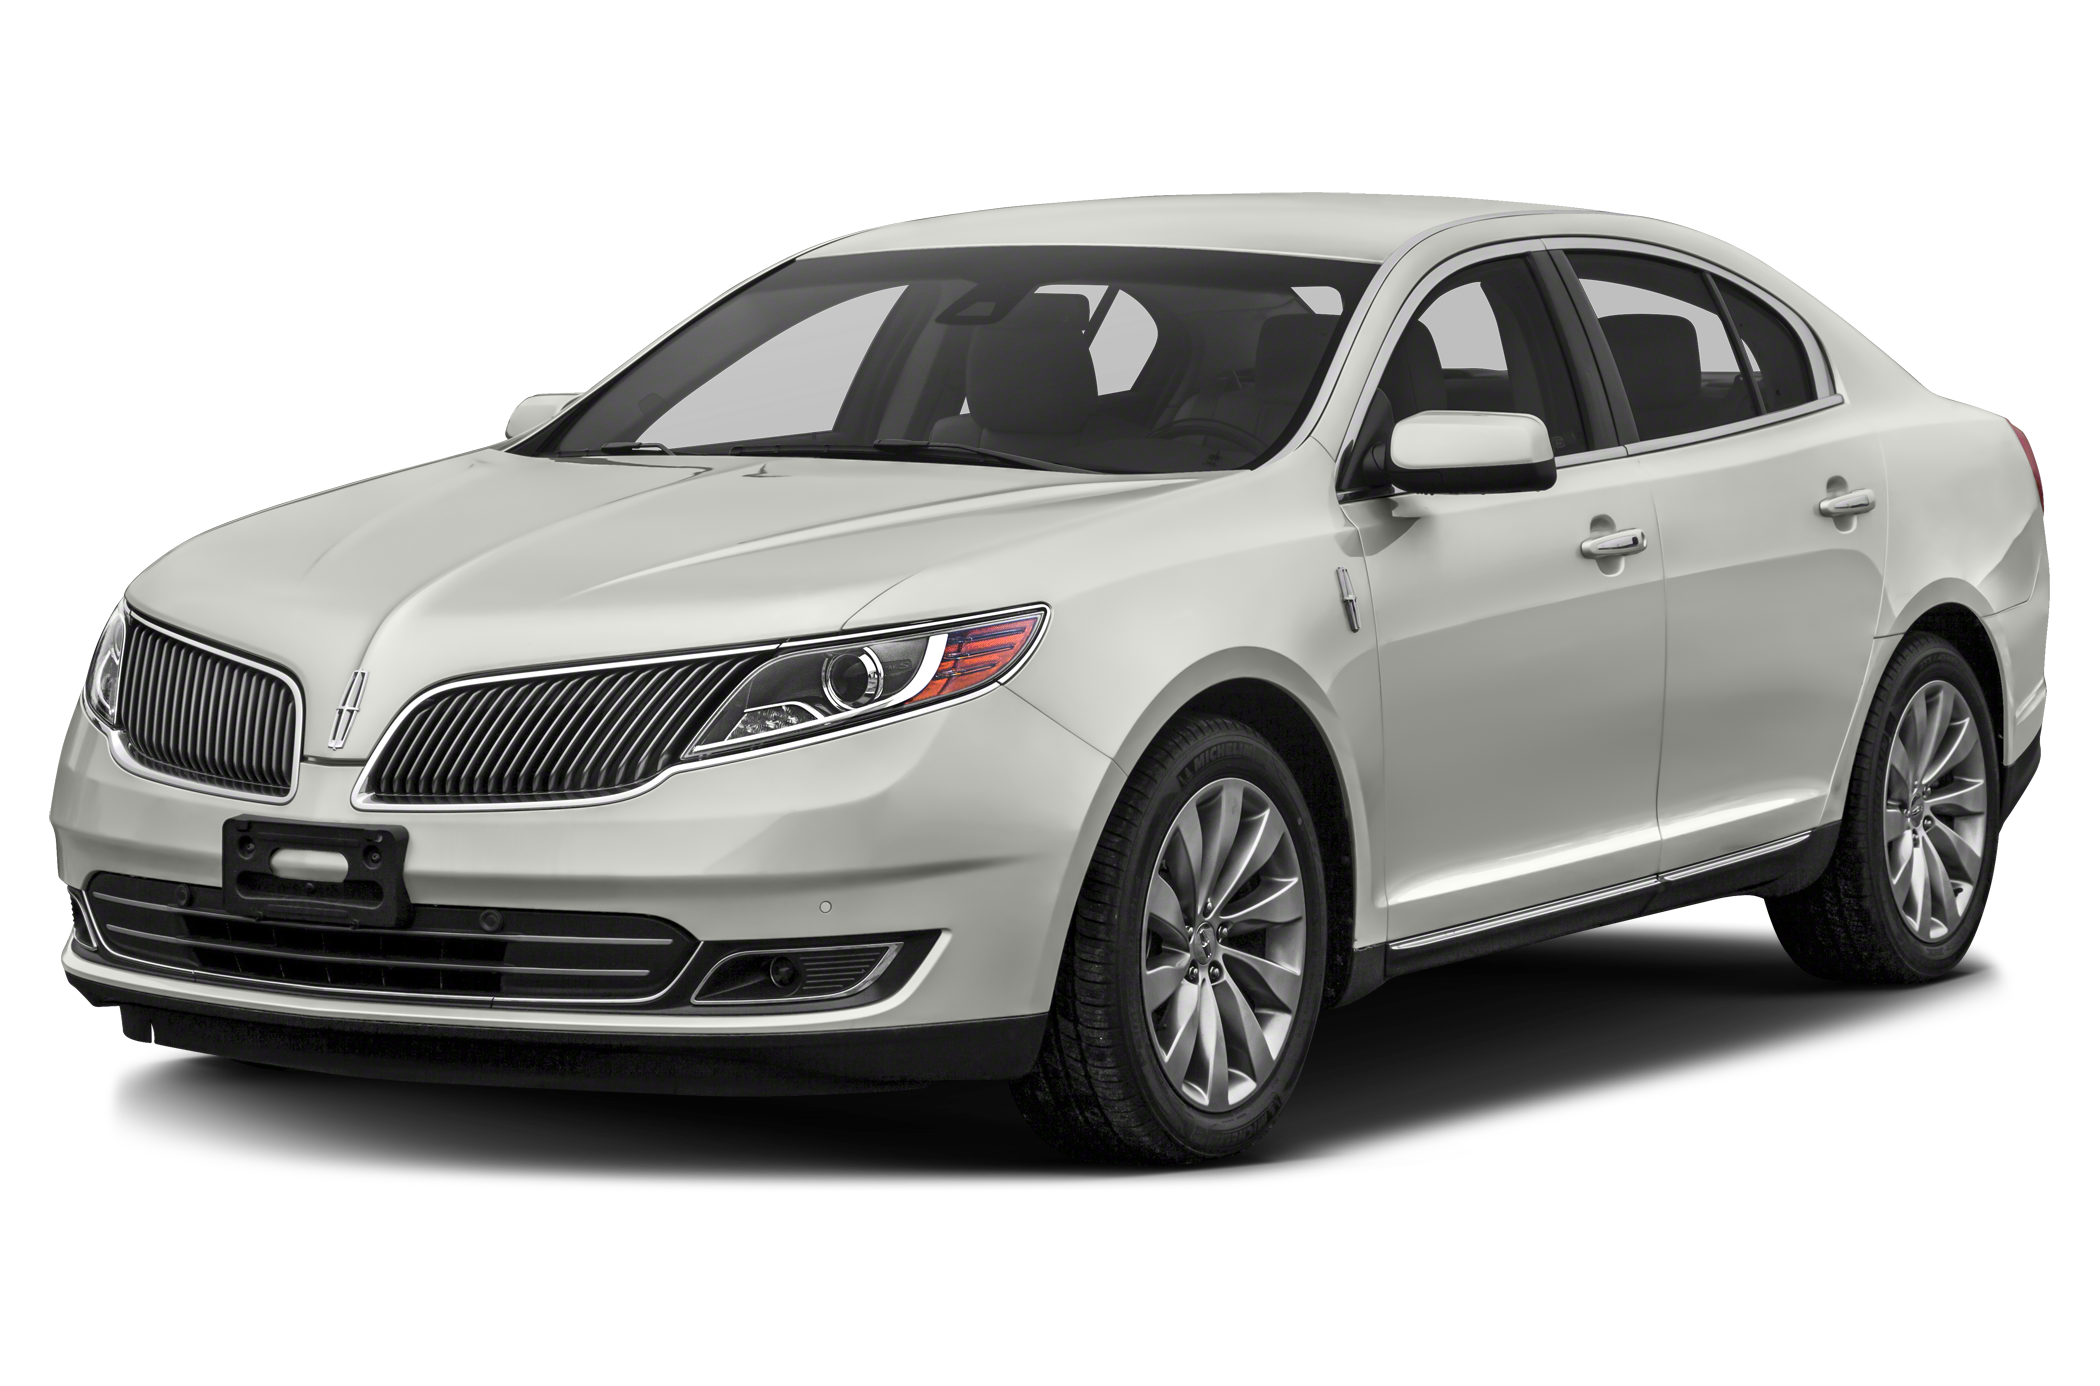 pare Lincoln Mks to Cadillac Xts